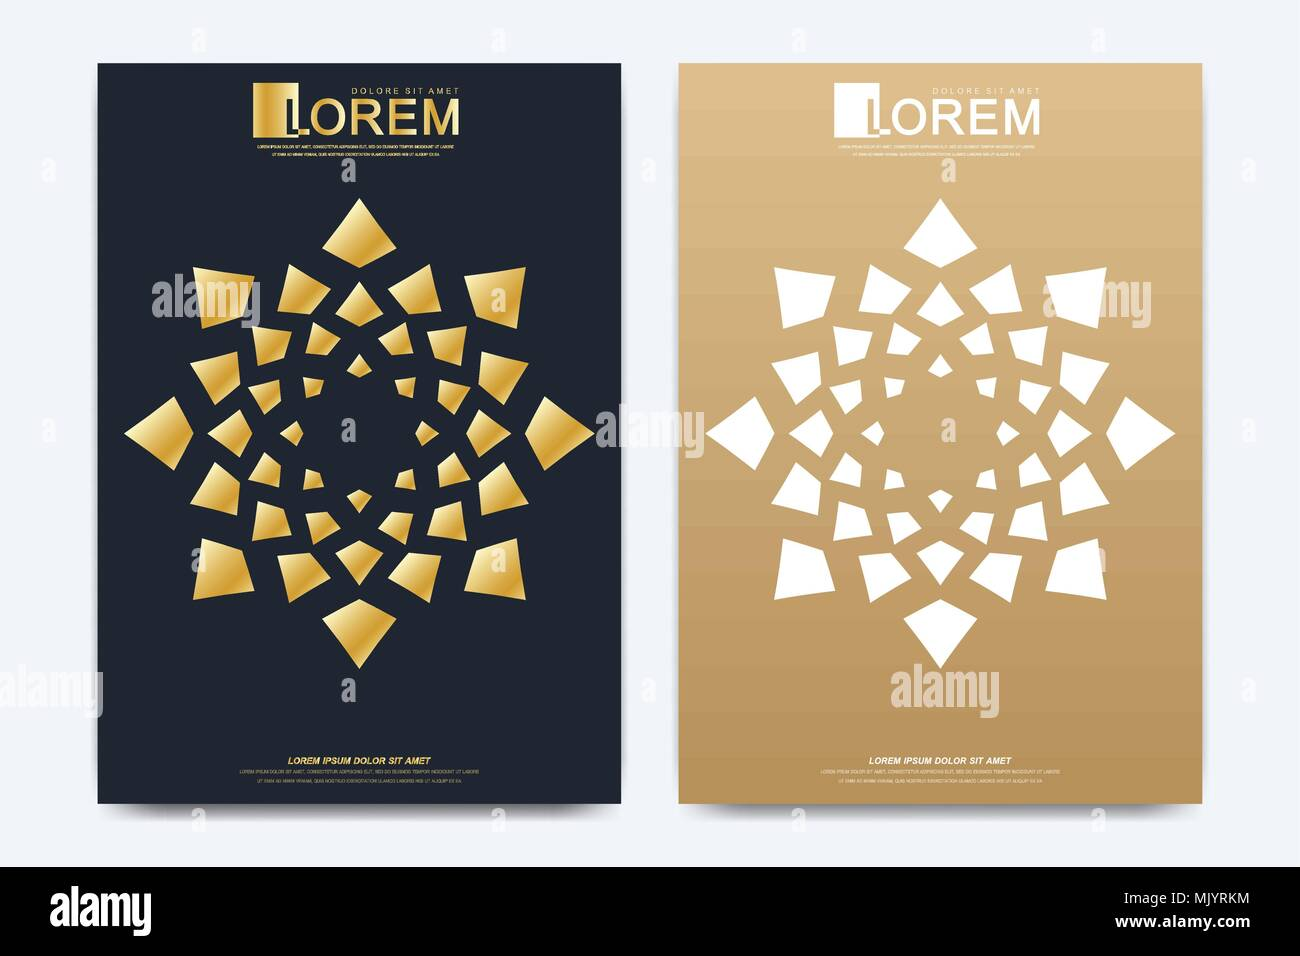 Modern vector template for brochure, Leaflet, flyer, advert, cover, magazine or annual report. A4 size. Islamic design book layout. Abstract golden presentation in islamic style. - Stock Image